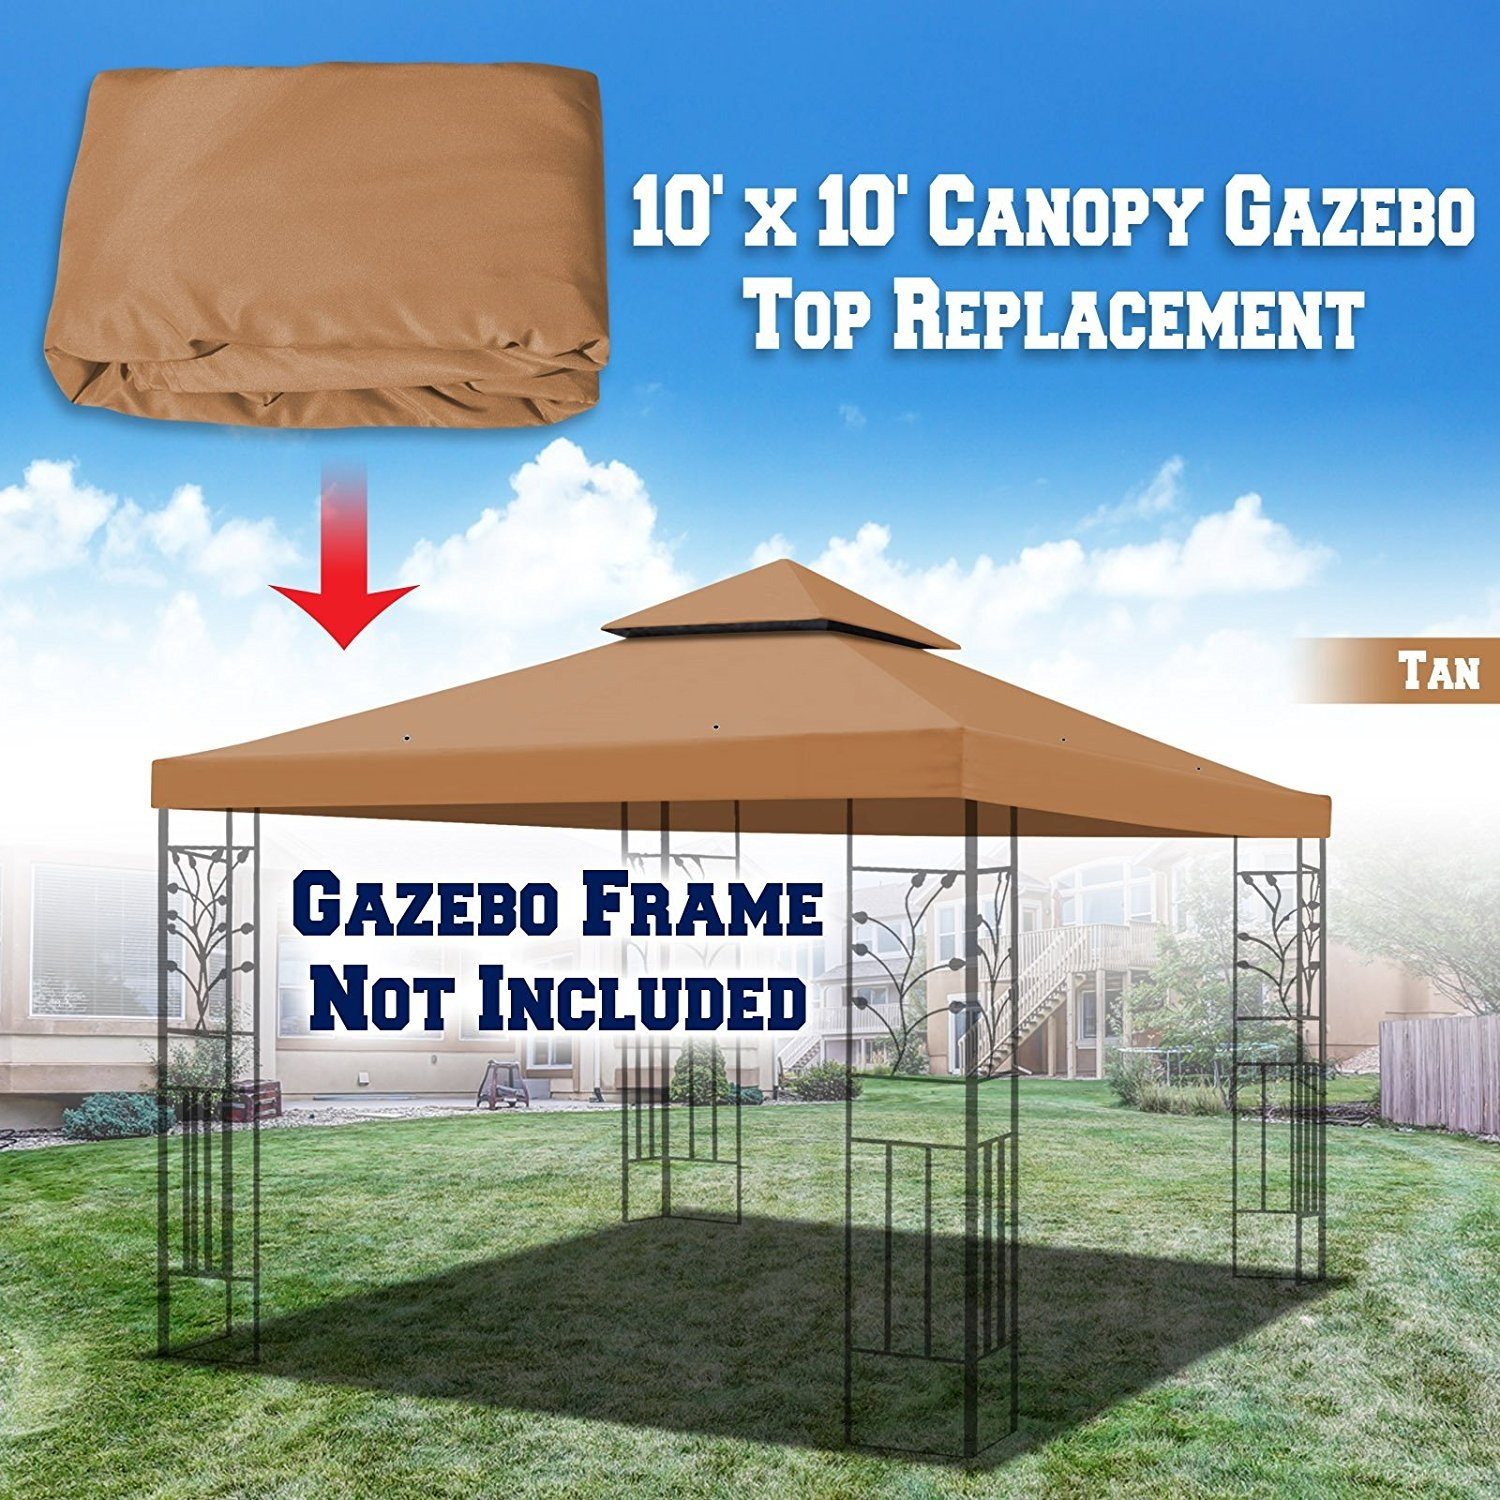 BenefitUSA Replacement 10'X10' Gazebo Canopy Top Cover Patio Pavilion Sunshade Double Tiers (Beige) vendorG246-BEG